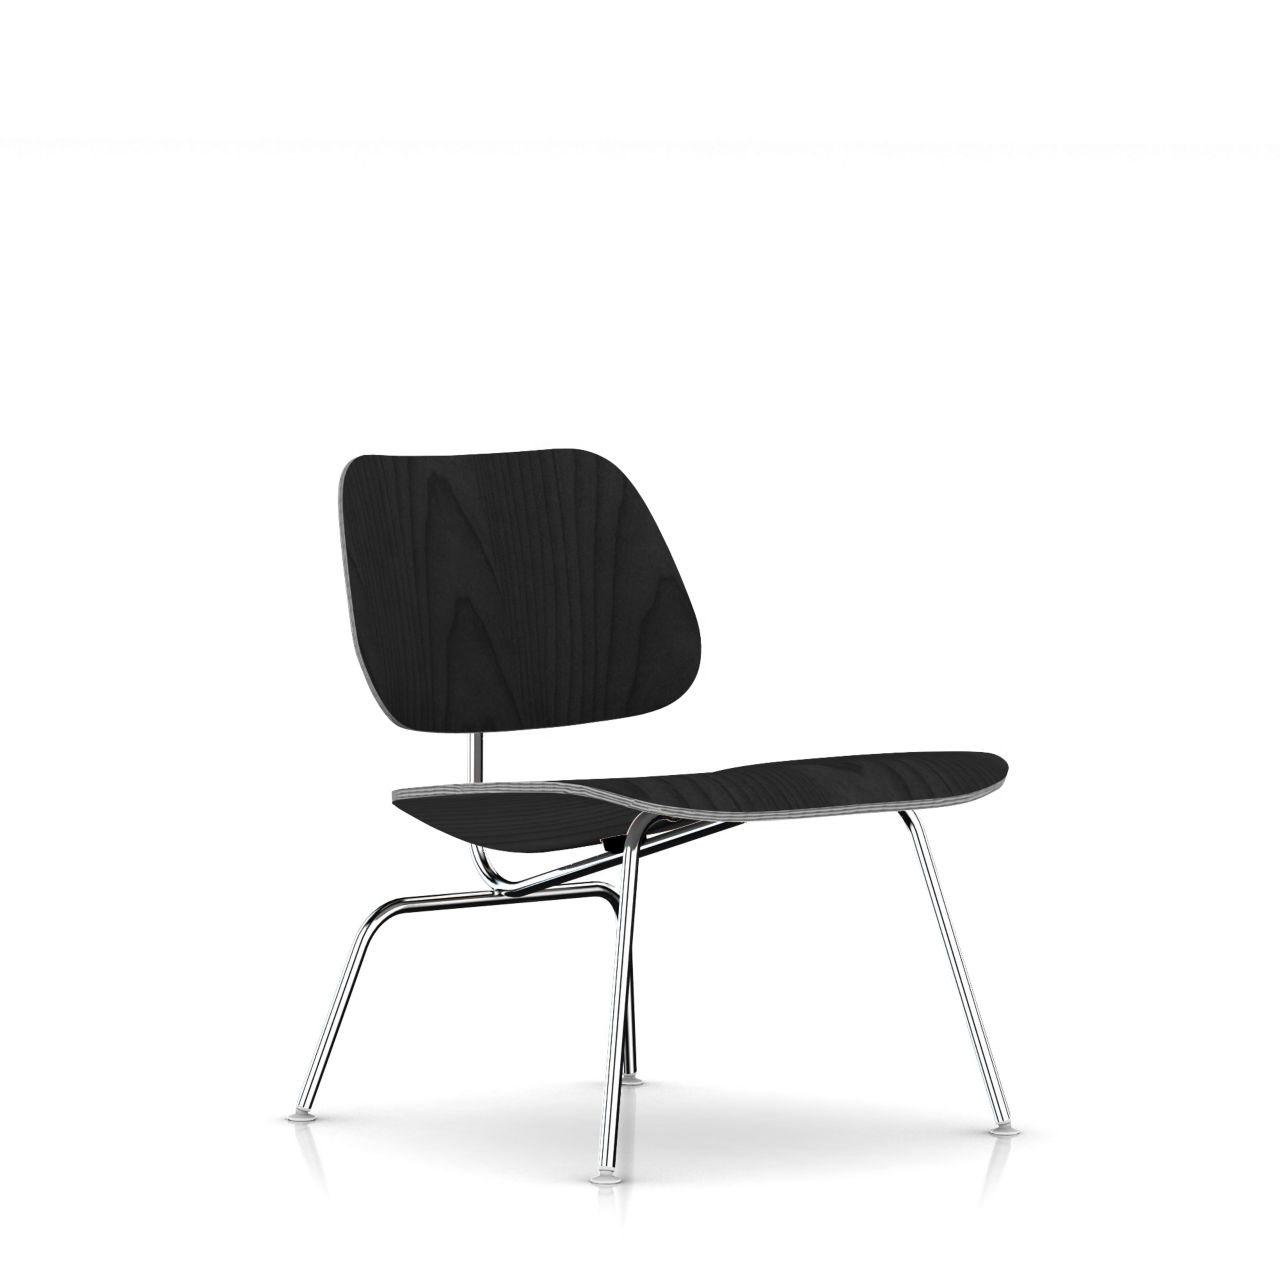 Eames Molded Plywood Lounge Chair in Ebony by Herman Miller